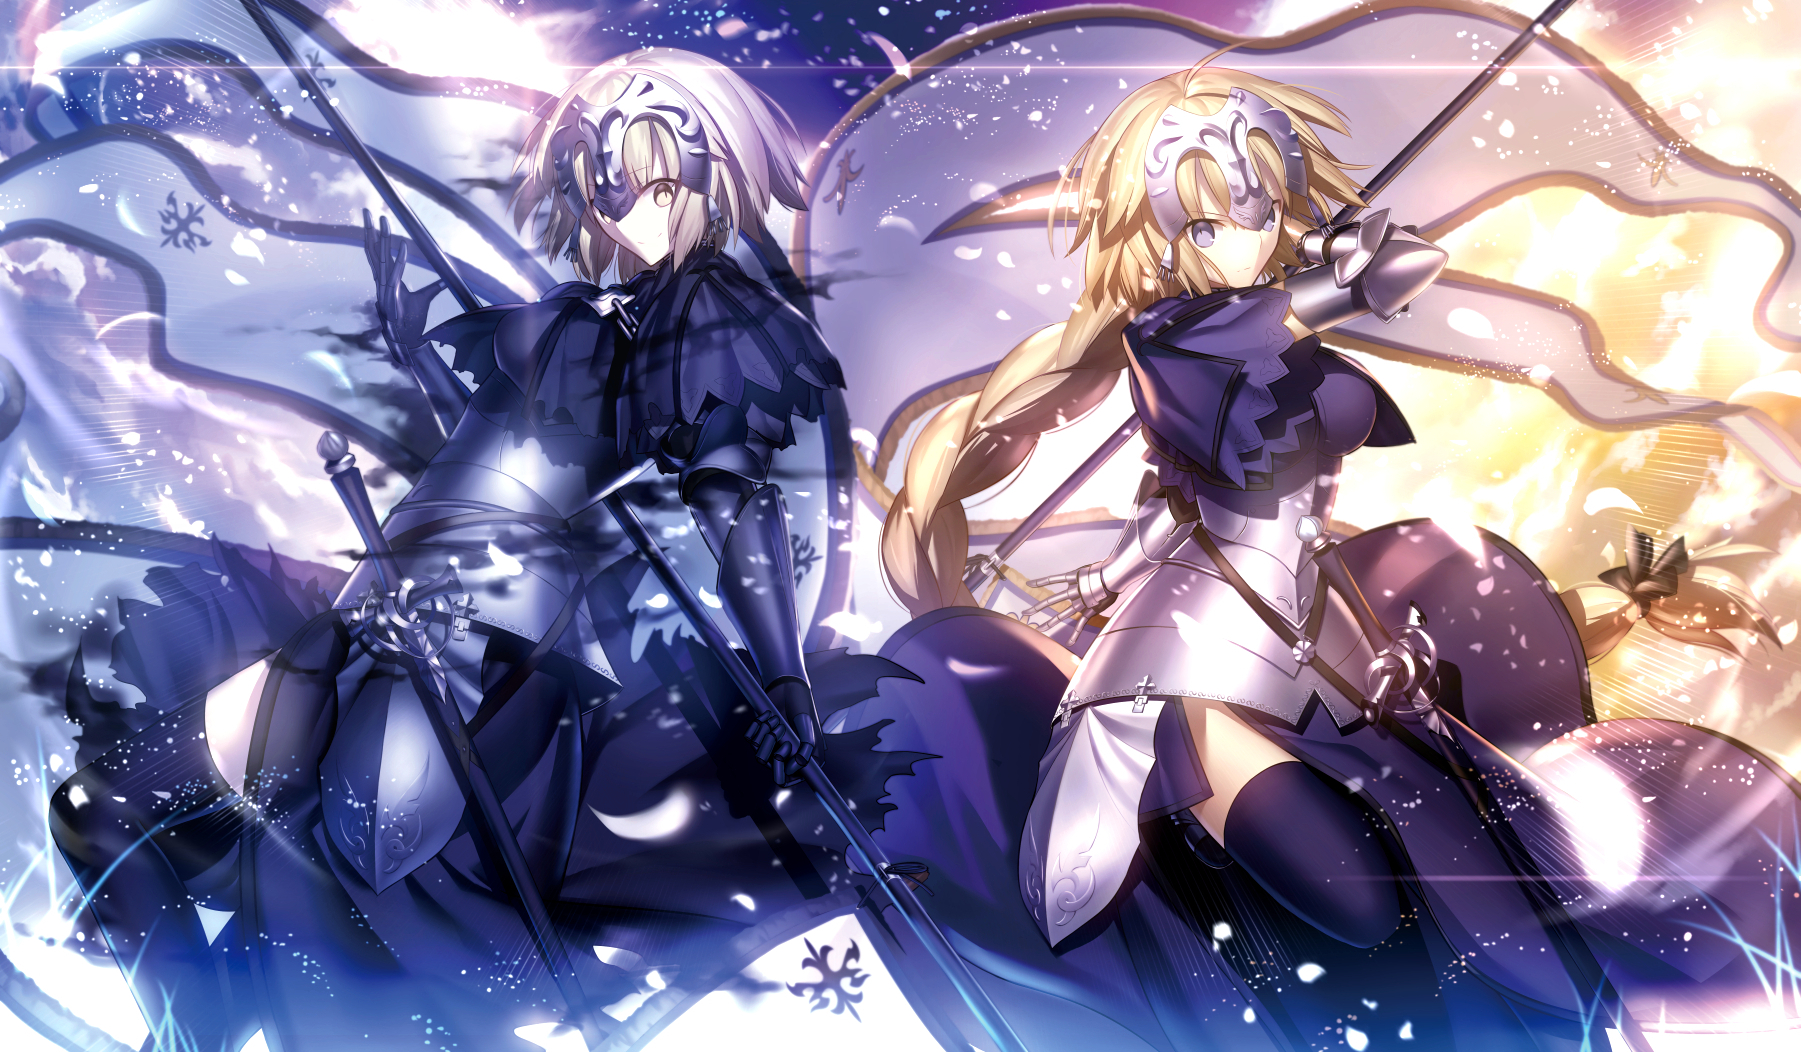 Fate - Fate/Grand Order: First Order [01/01] [DDL/Multihoster ] [CR] [300MB] - Anime Ligero [Descargas]